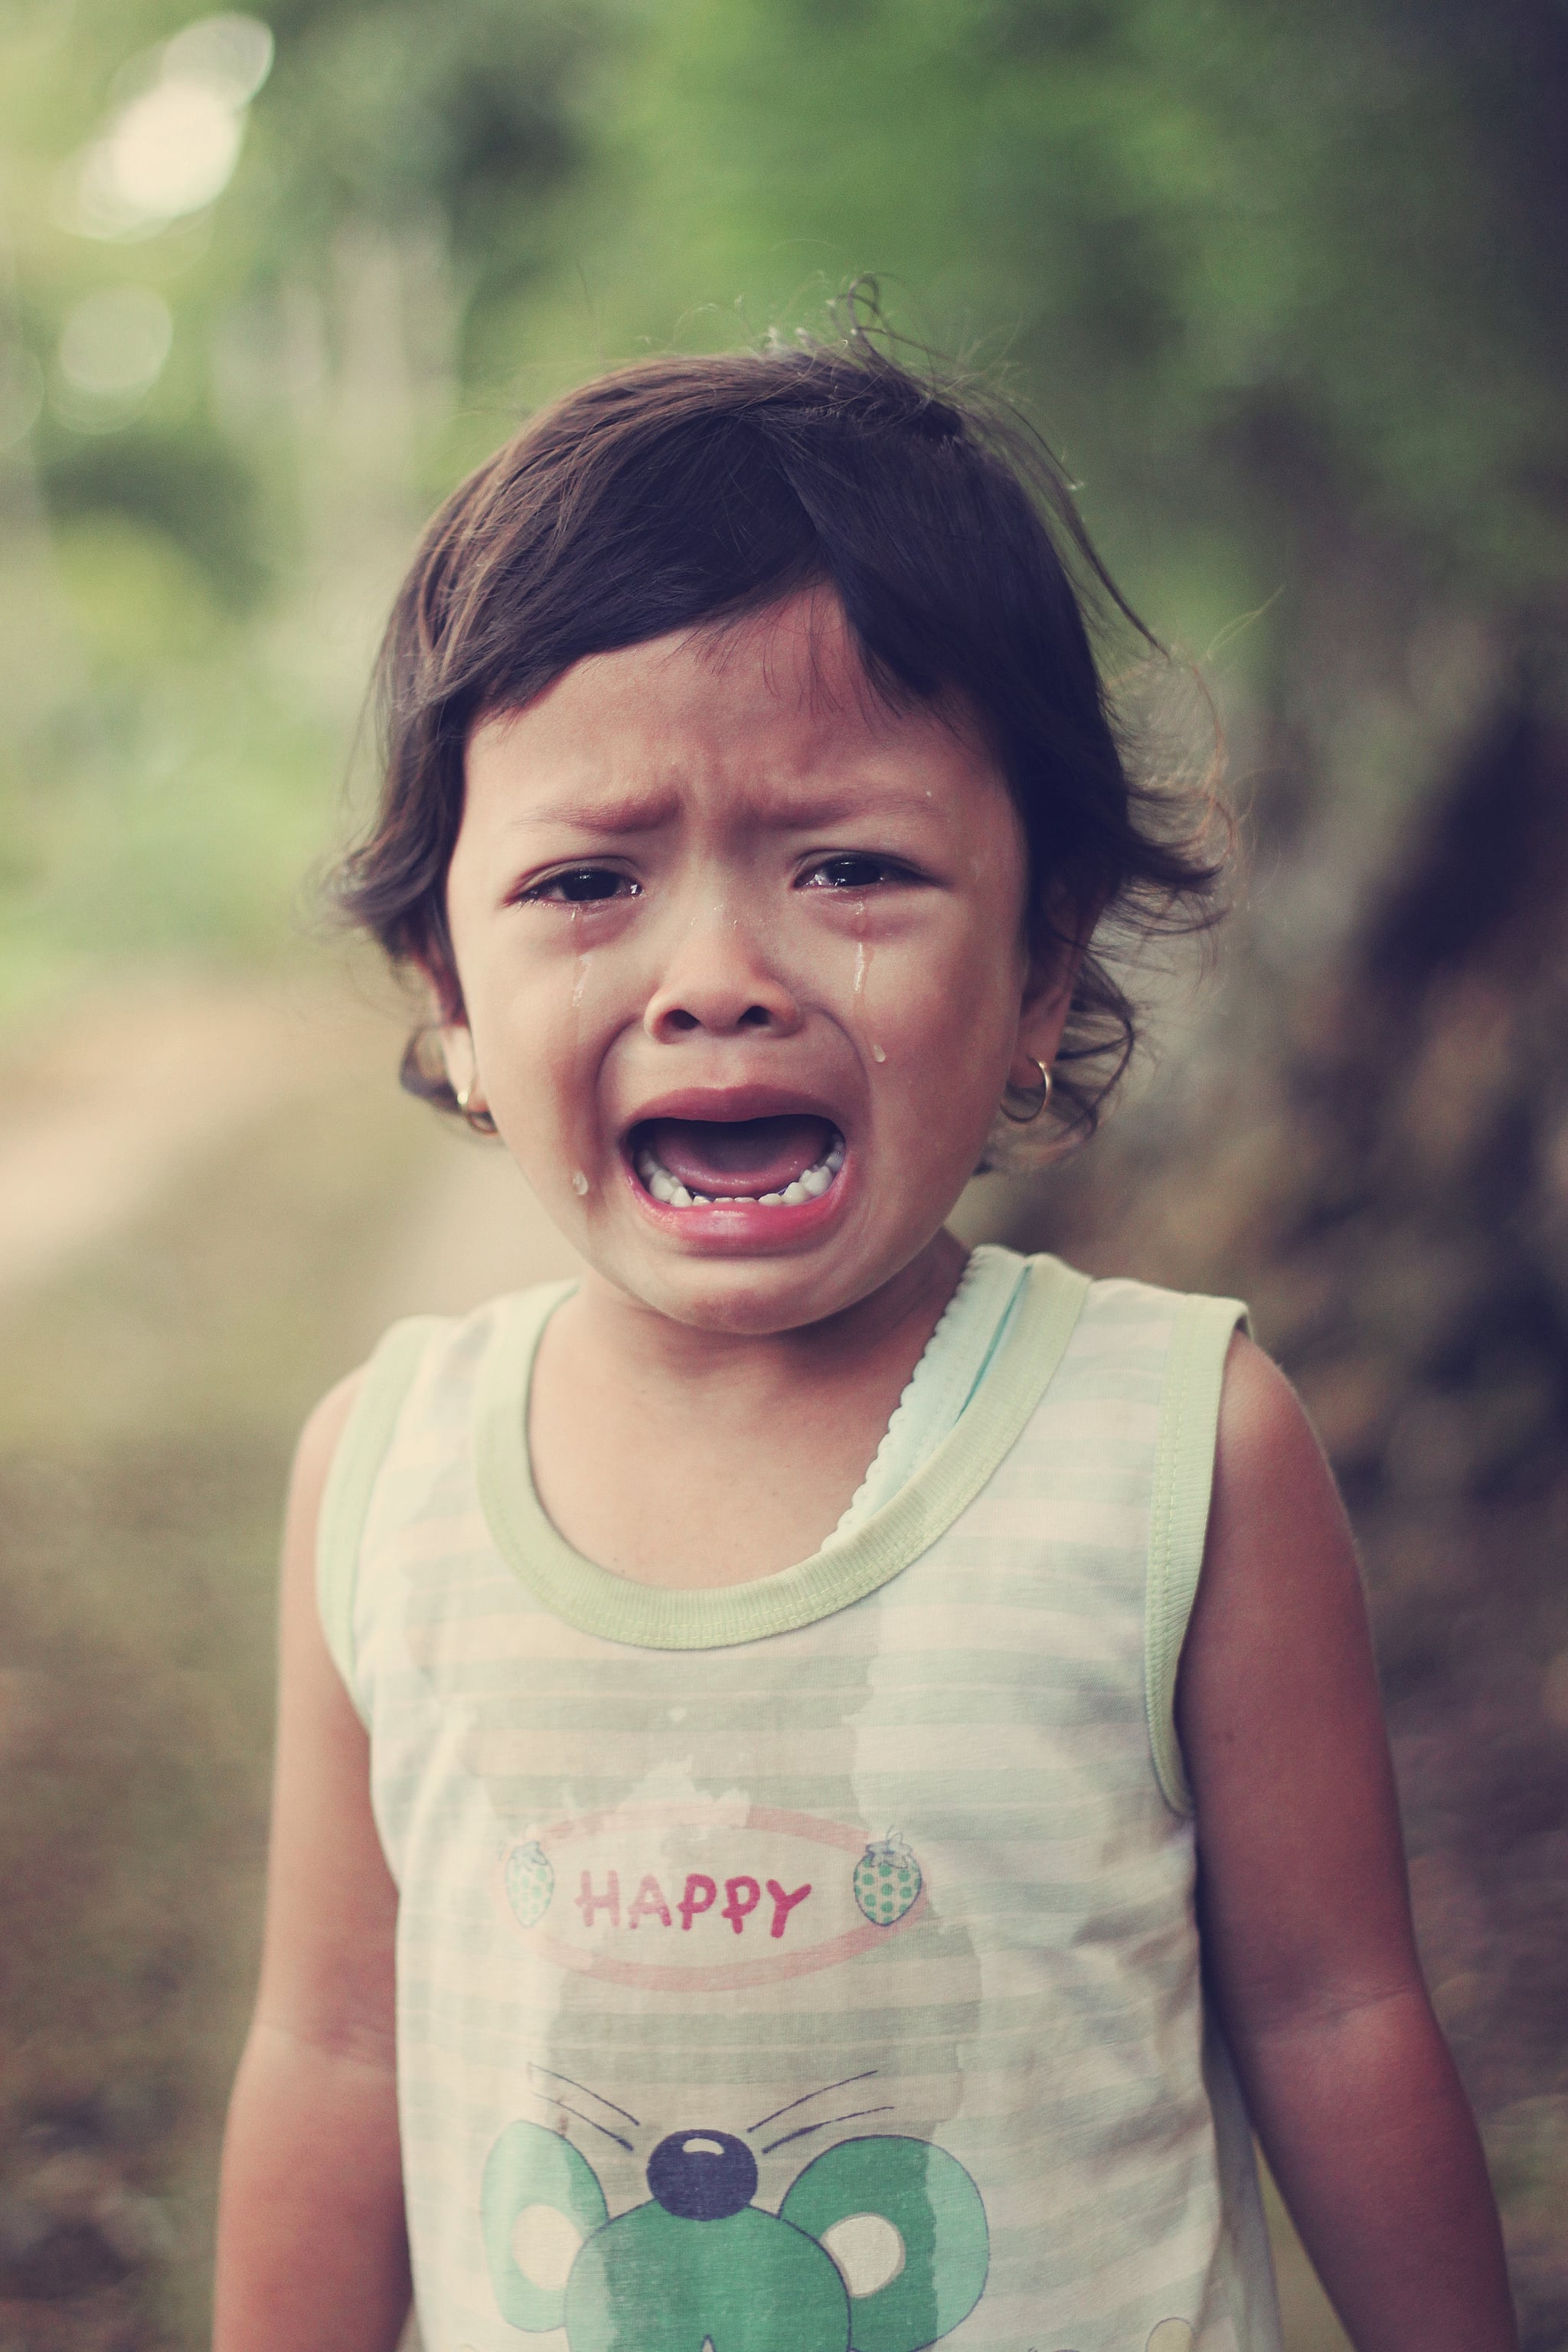 12 Best Tips For Parenting Emotional, Empathetic Kids (Without Hurting Them)